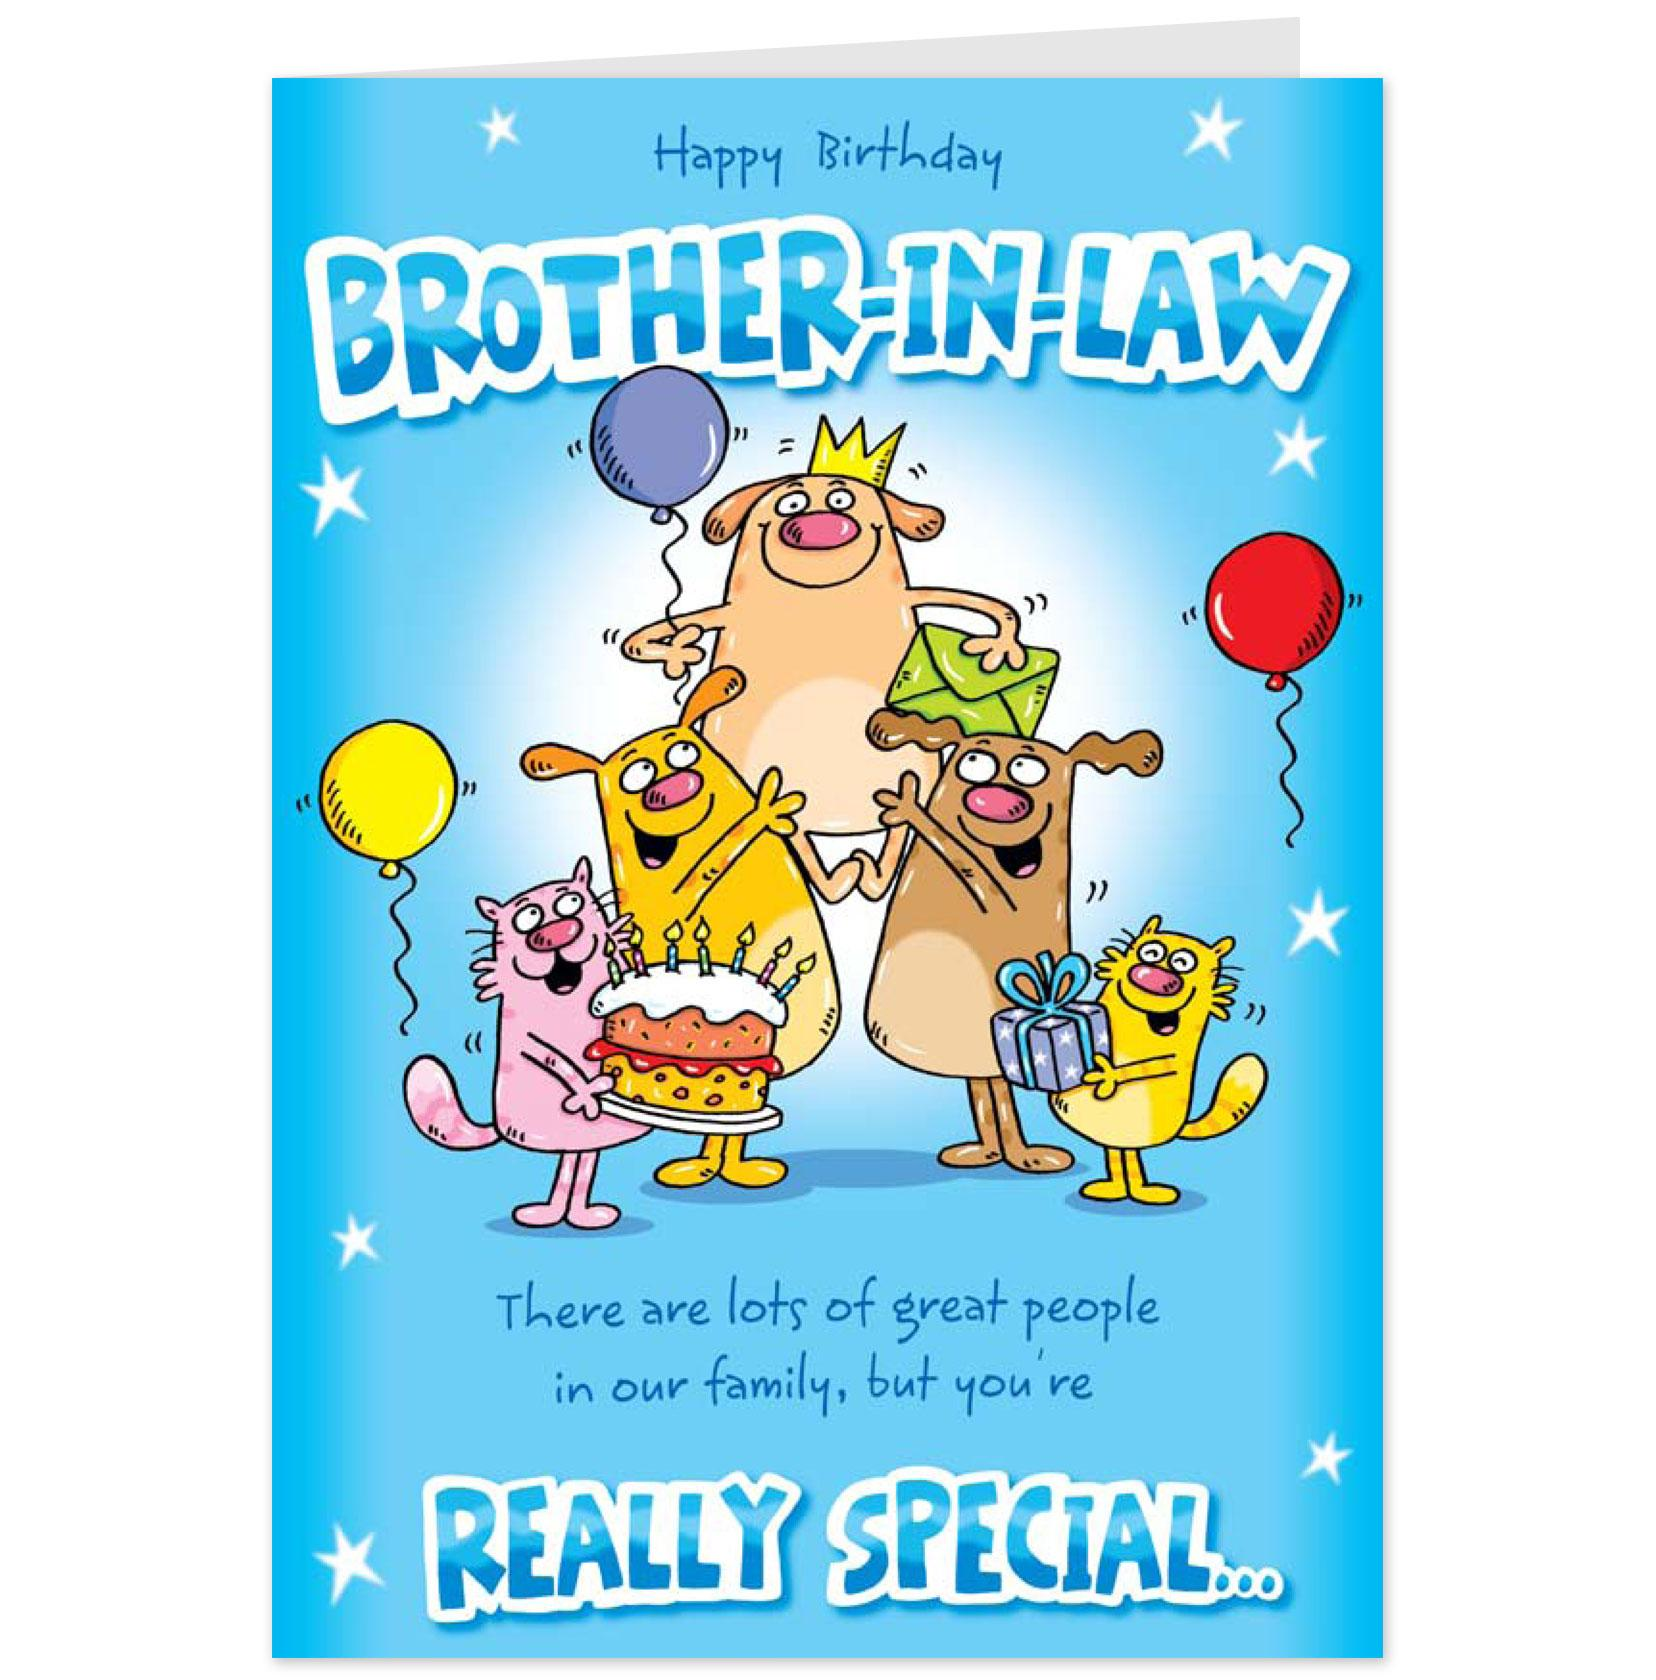 brother in law birthday wishes card ; 77ab02409a7d5162b9a7478967fe7752